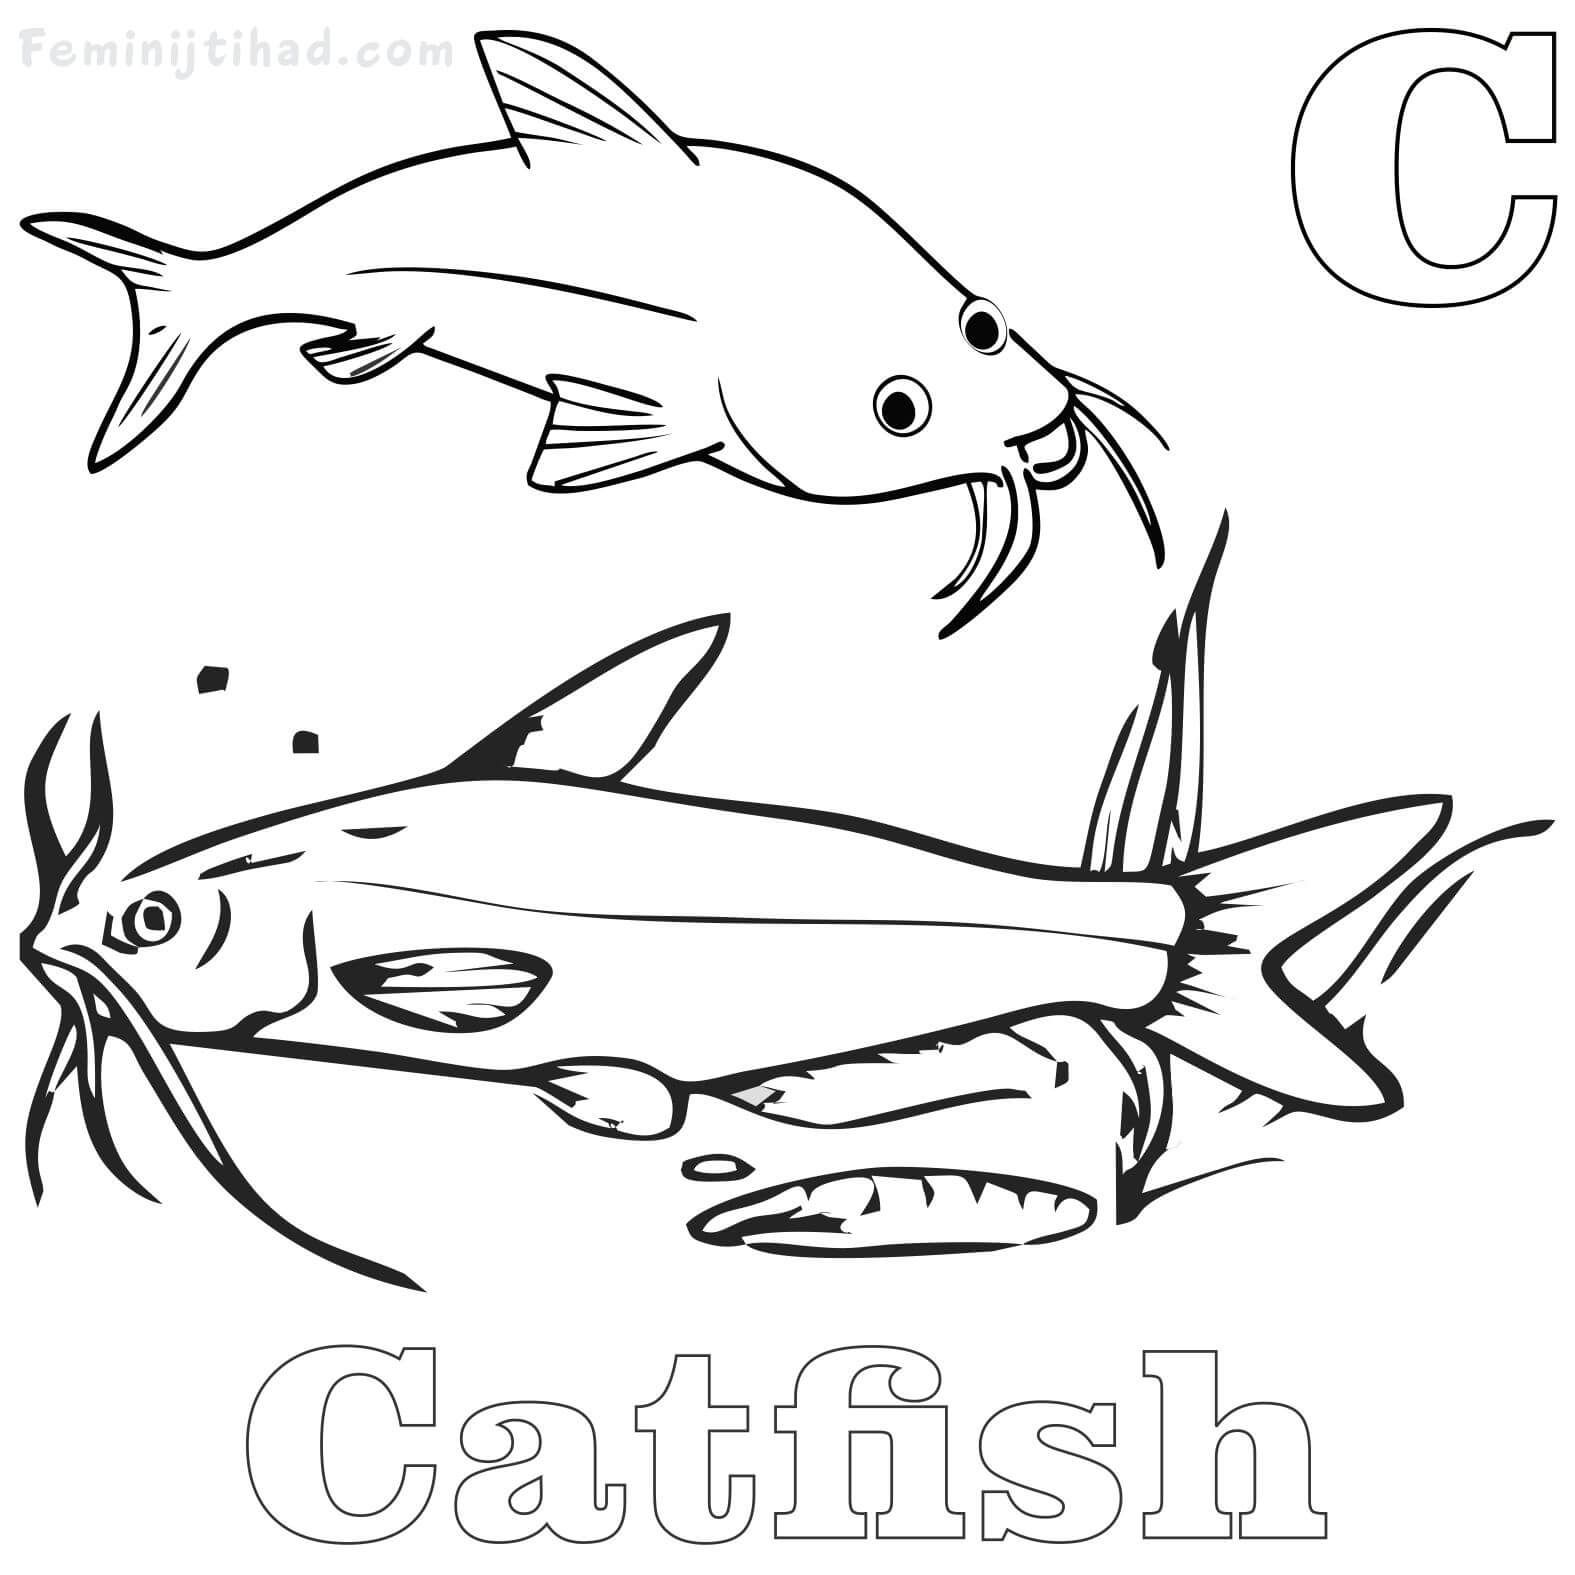 Catfish Coloring Pages Printable For Free Animal Coloring Pages Coloring Pages Catfish